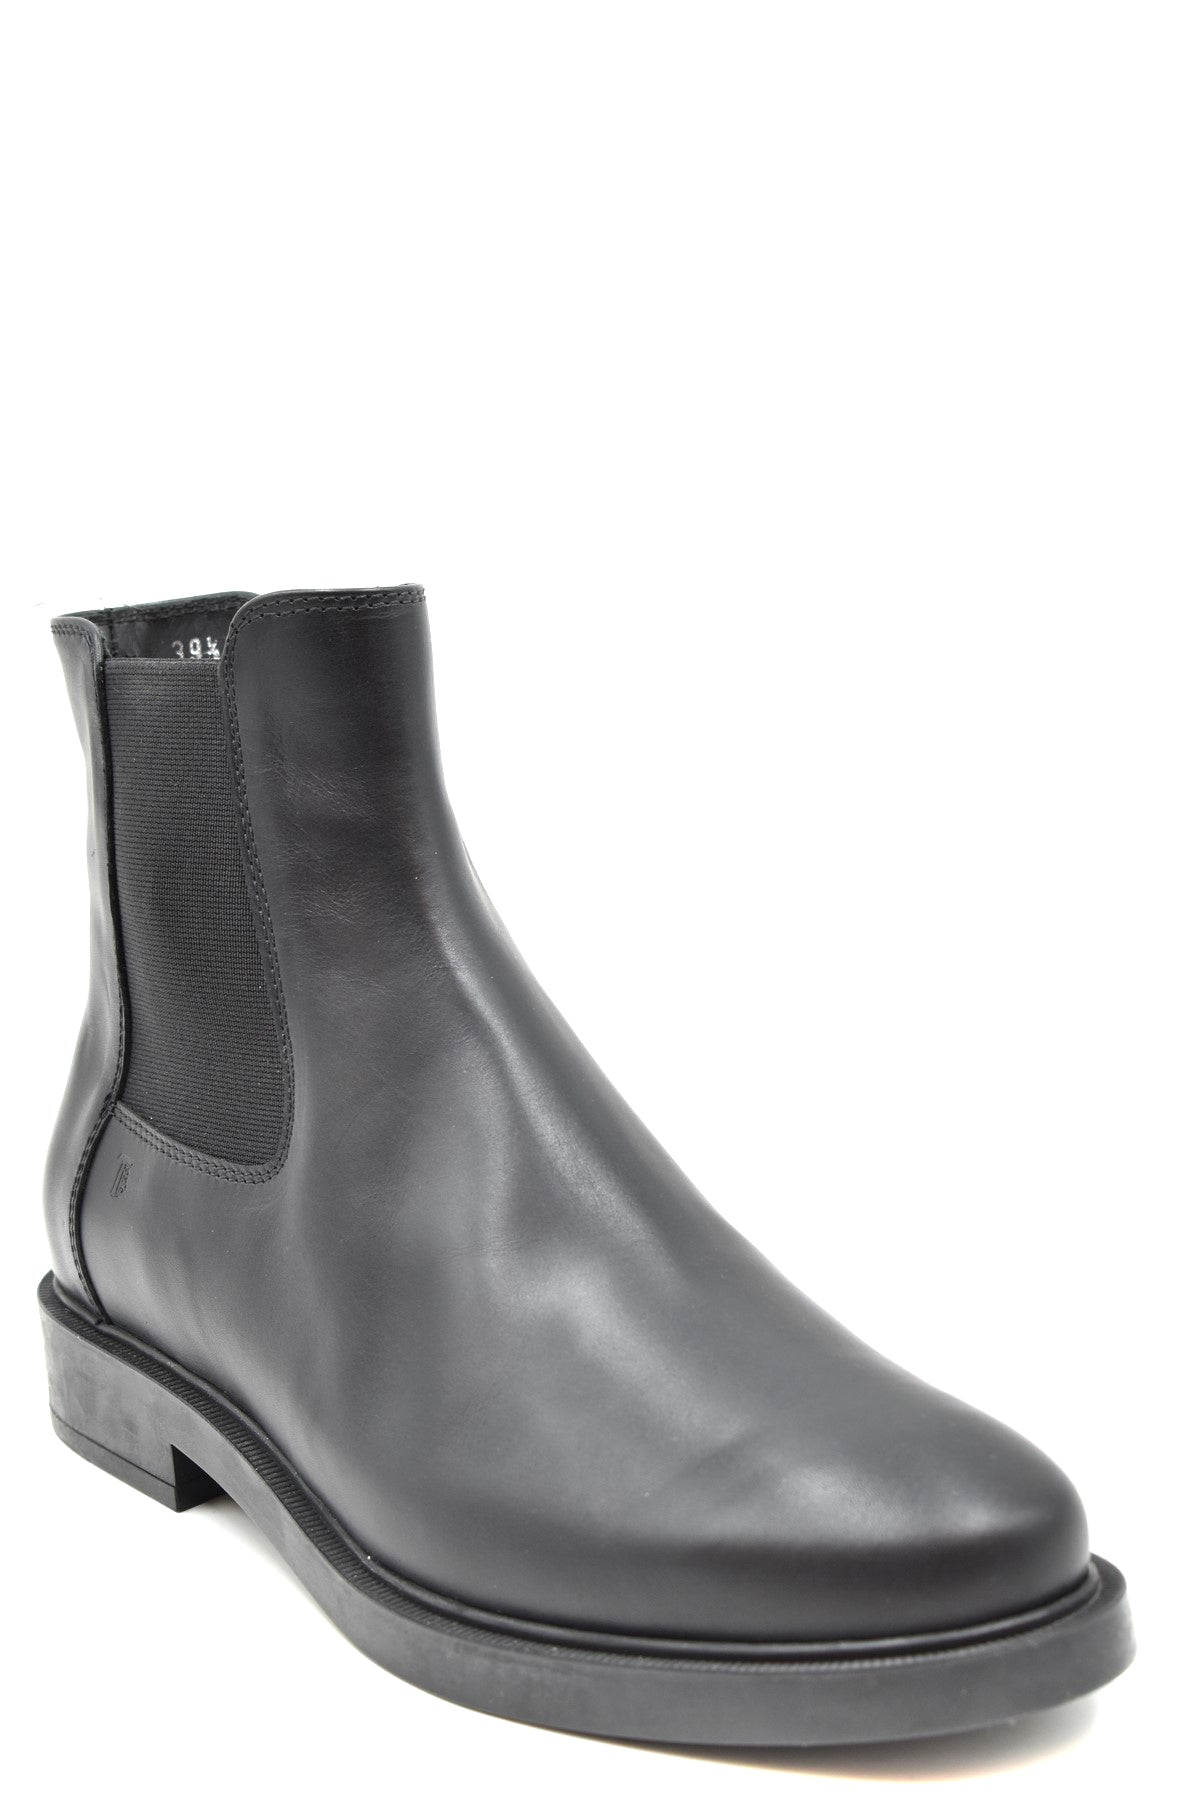 Shoes Tod'S-Women's Fashion - Women's Shoes - Women's Boots-Product Details Terms: New With LabelMain Color: BlackType Of Accessory: BootsSeason: Fall / WinterMade In: ItalyGender: WomanSize: EuComposition: Leather 100%Year: 2019Manufacturer Part Number: Xxw0Zp0V830Gocb999-Keyomi-Sook